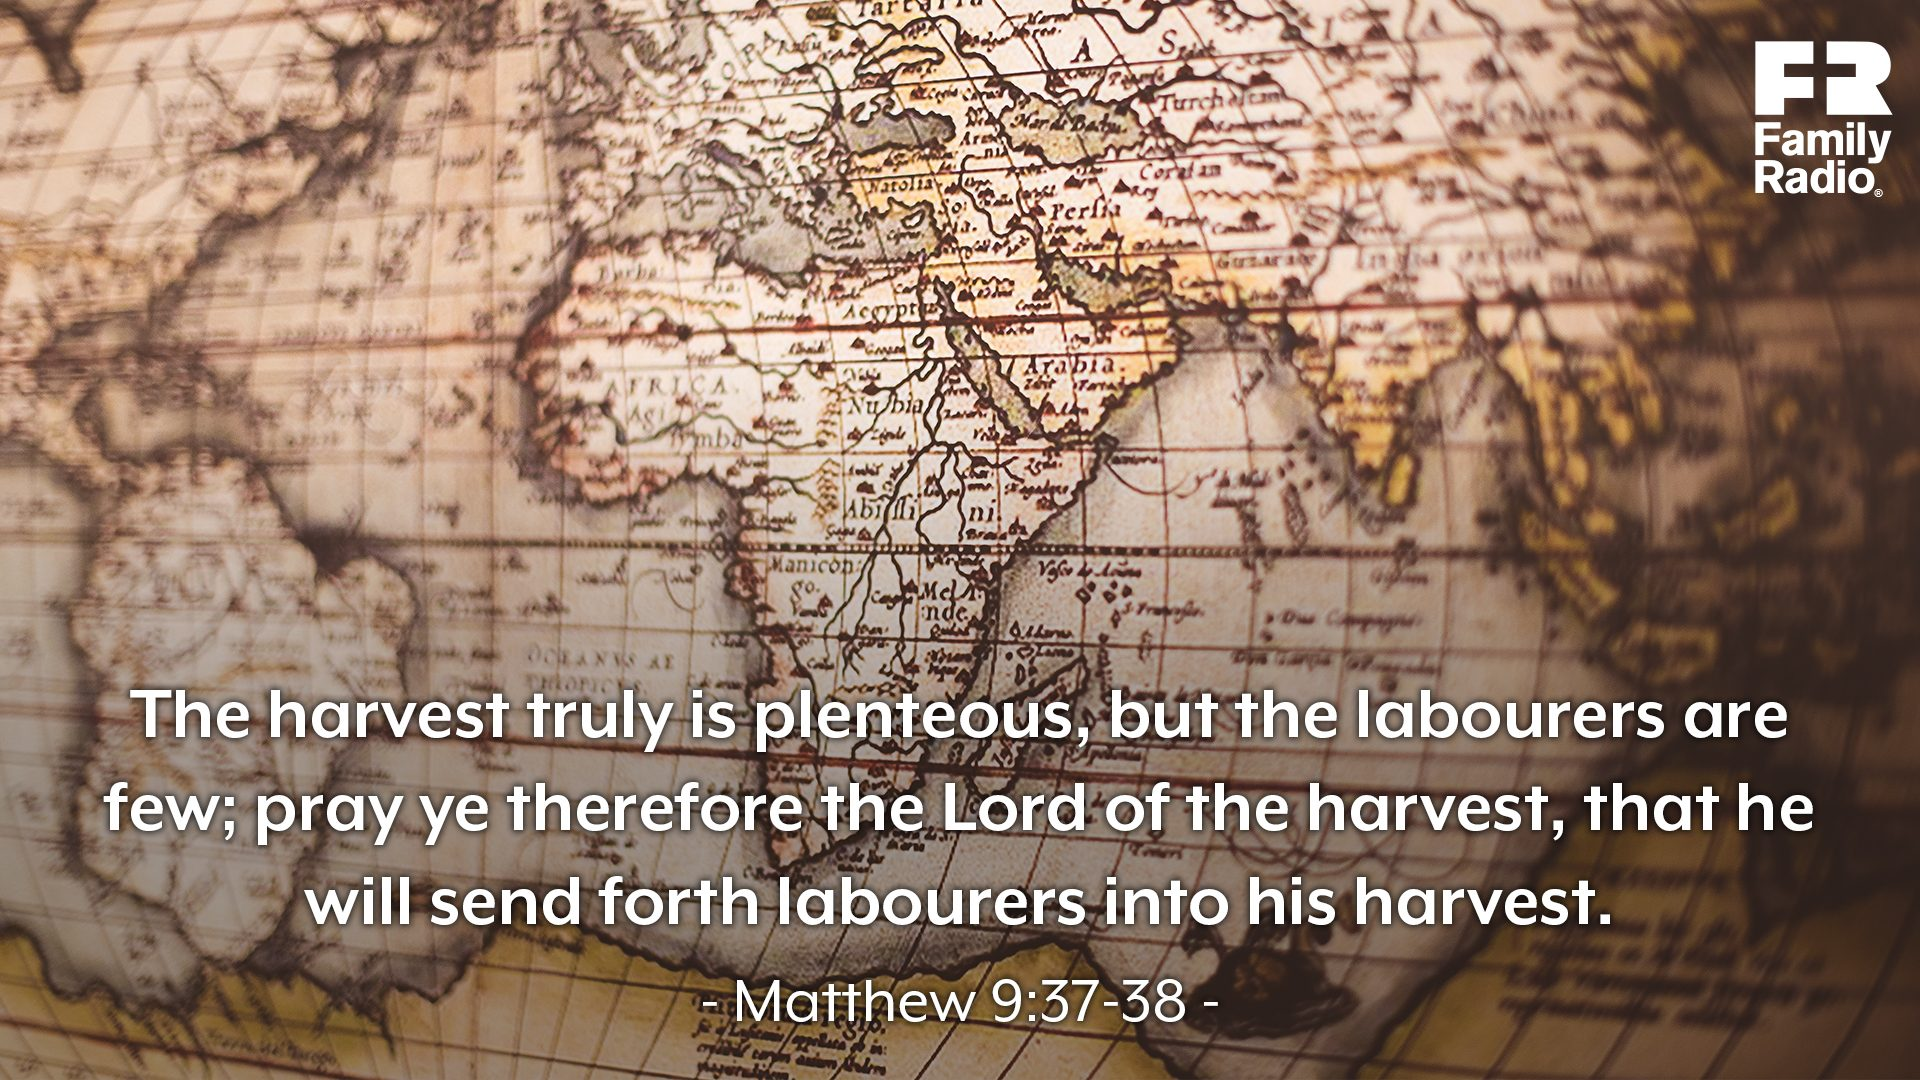 """The harvest truly is plenteous, but the labourers are few; pray ye therefore the Lord of the harvest, that he will send forth labourers into his harvest."""